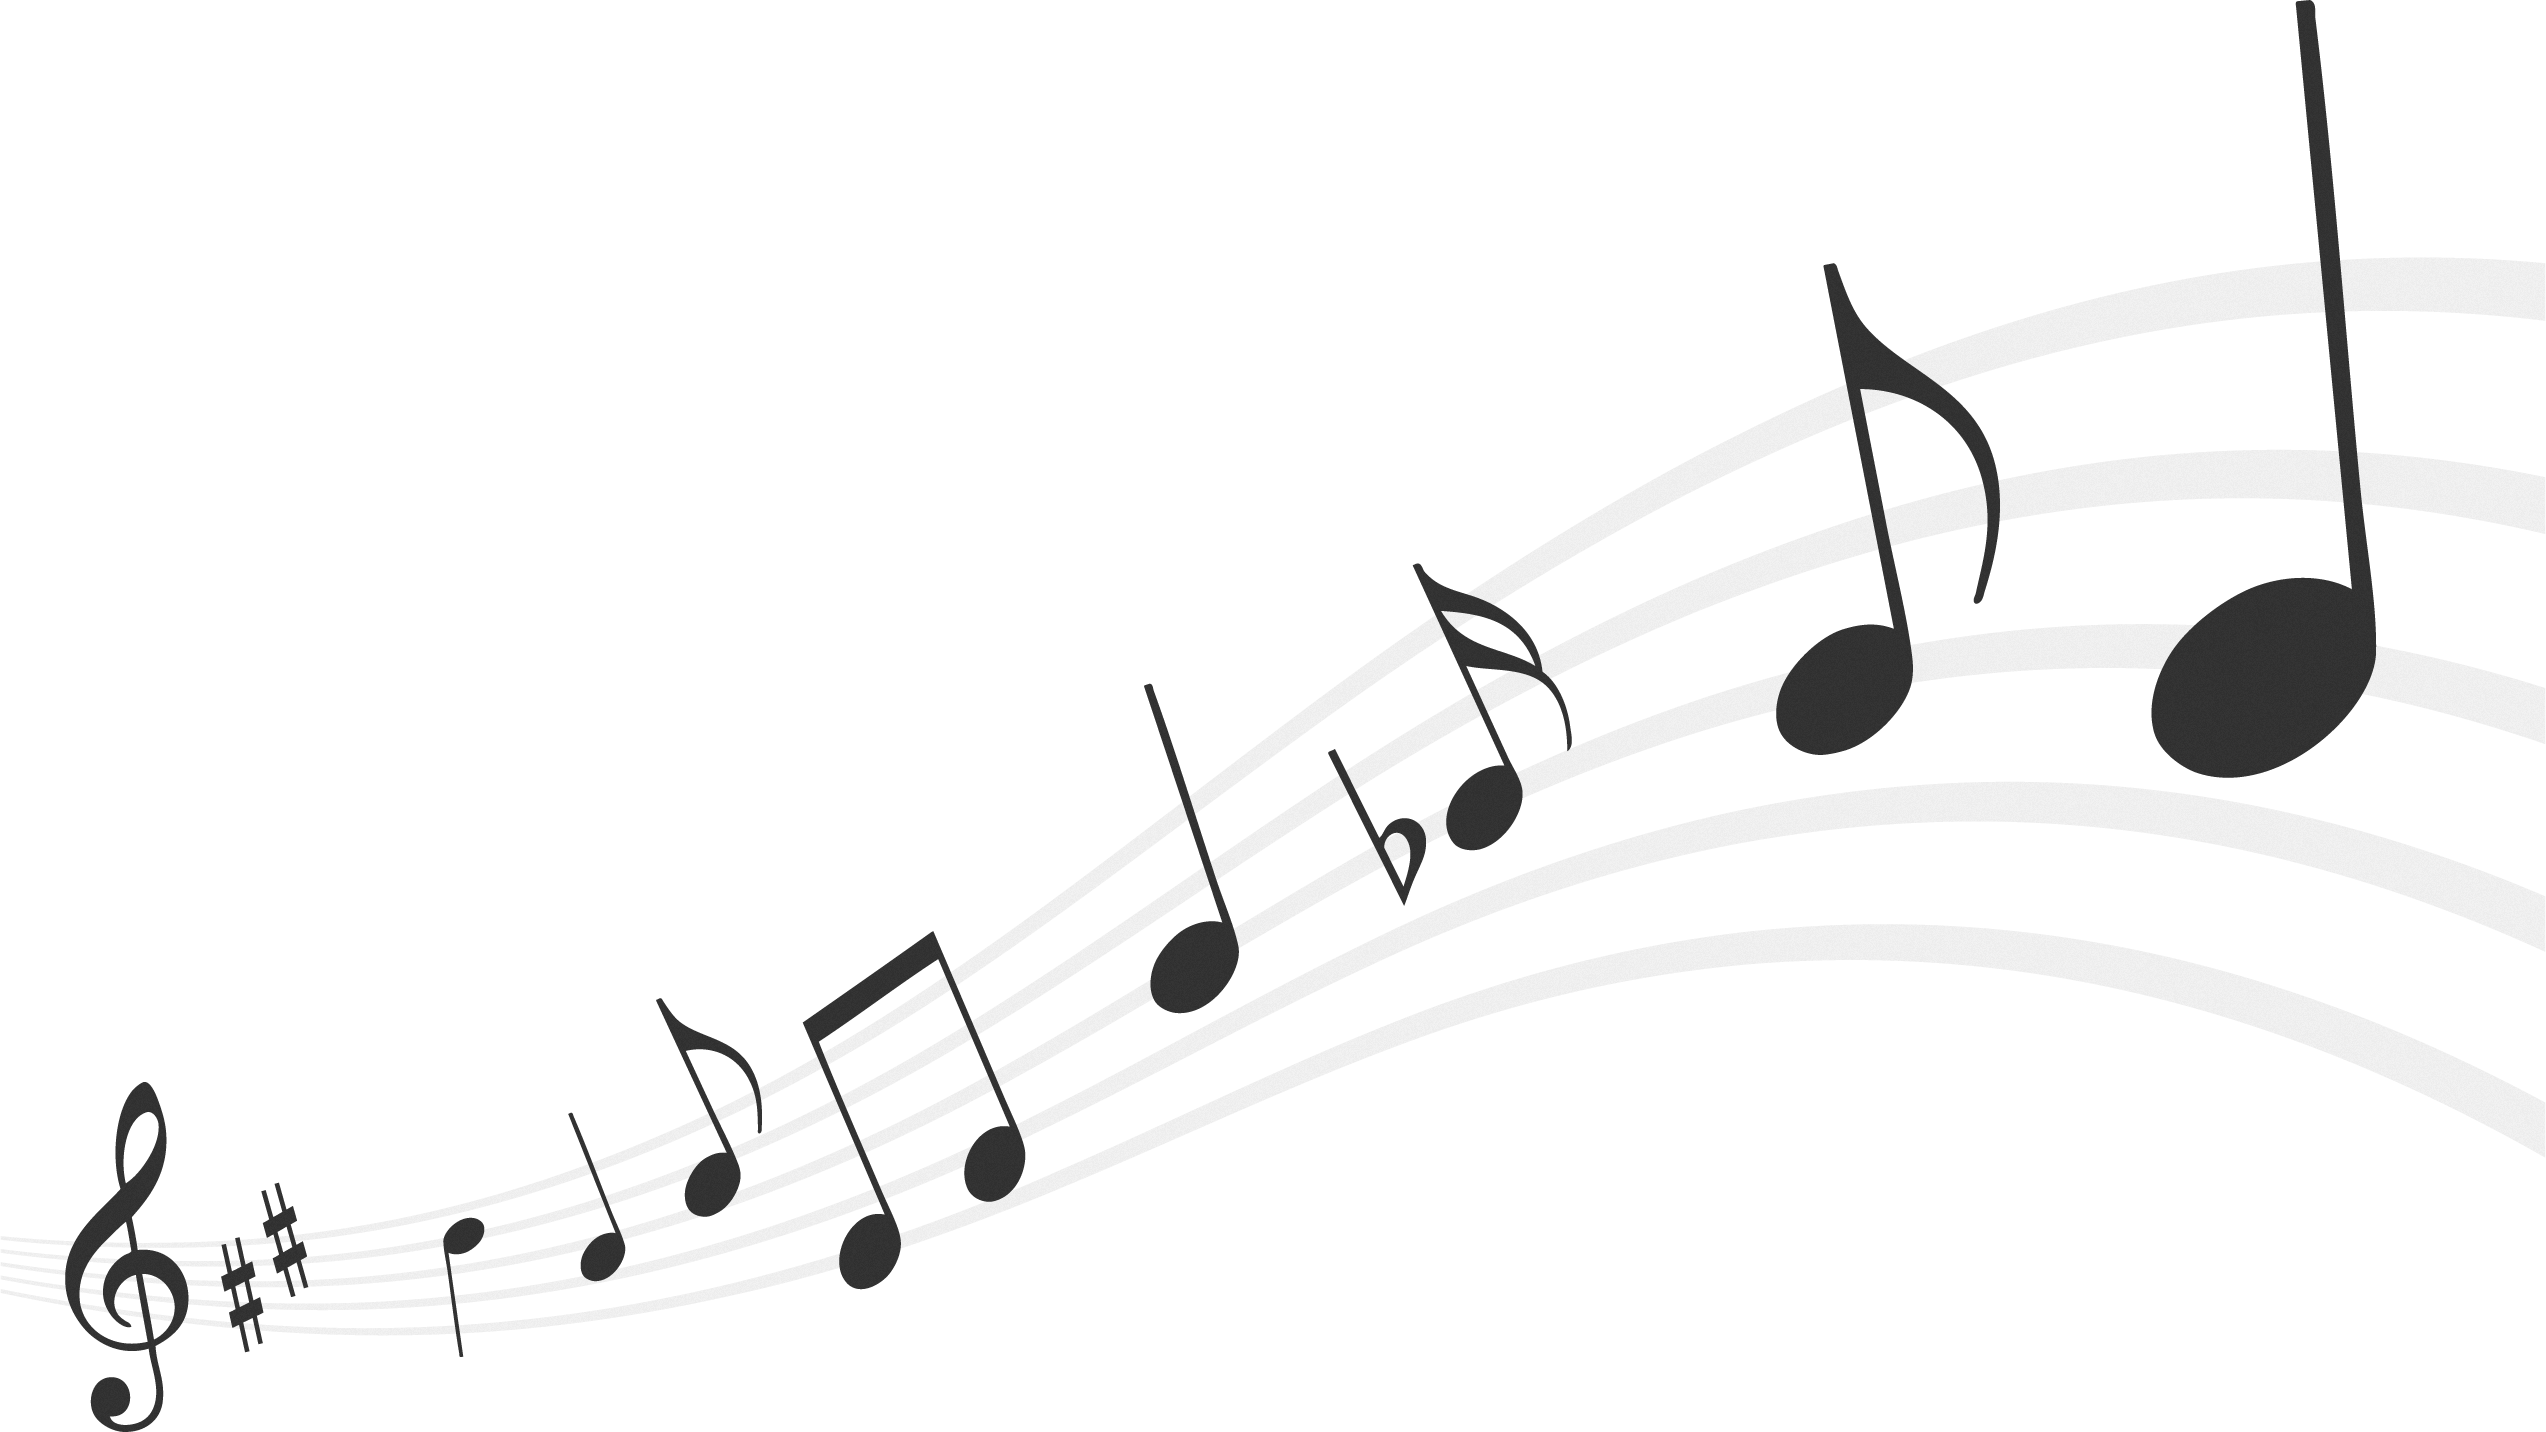 Hd transparent images pluspng. Staff music notes png graphic freeuse